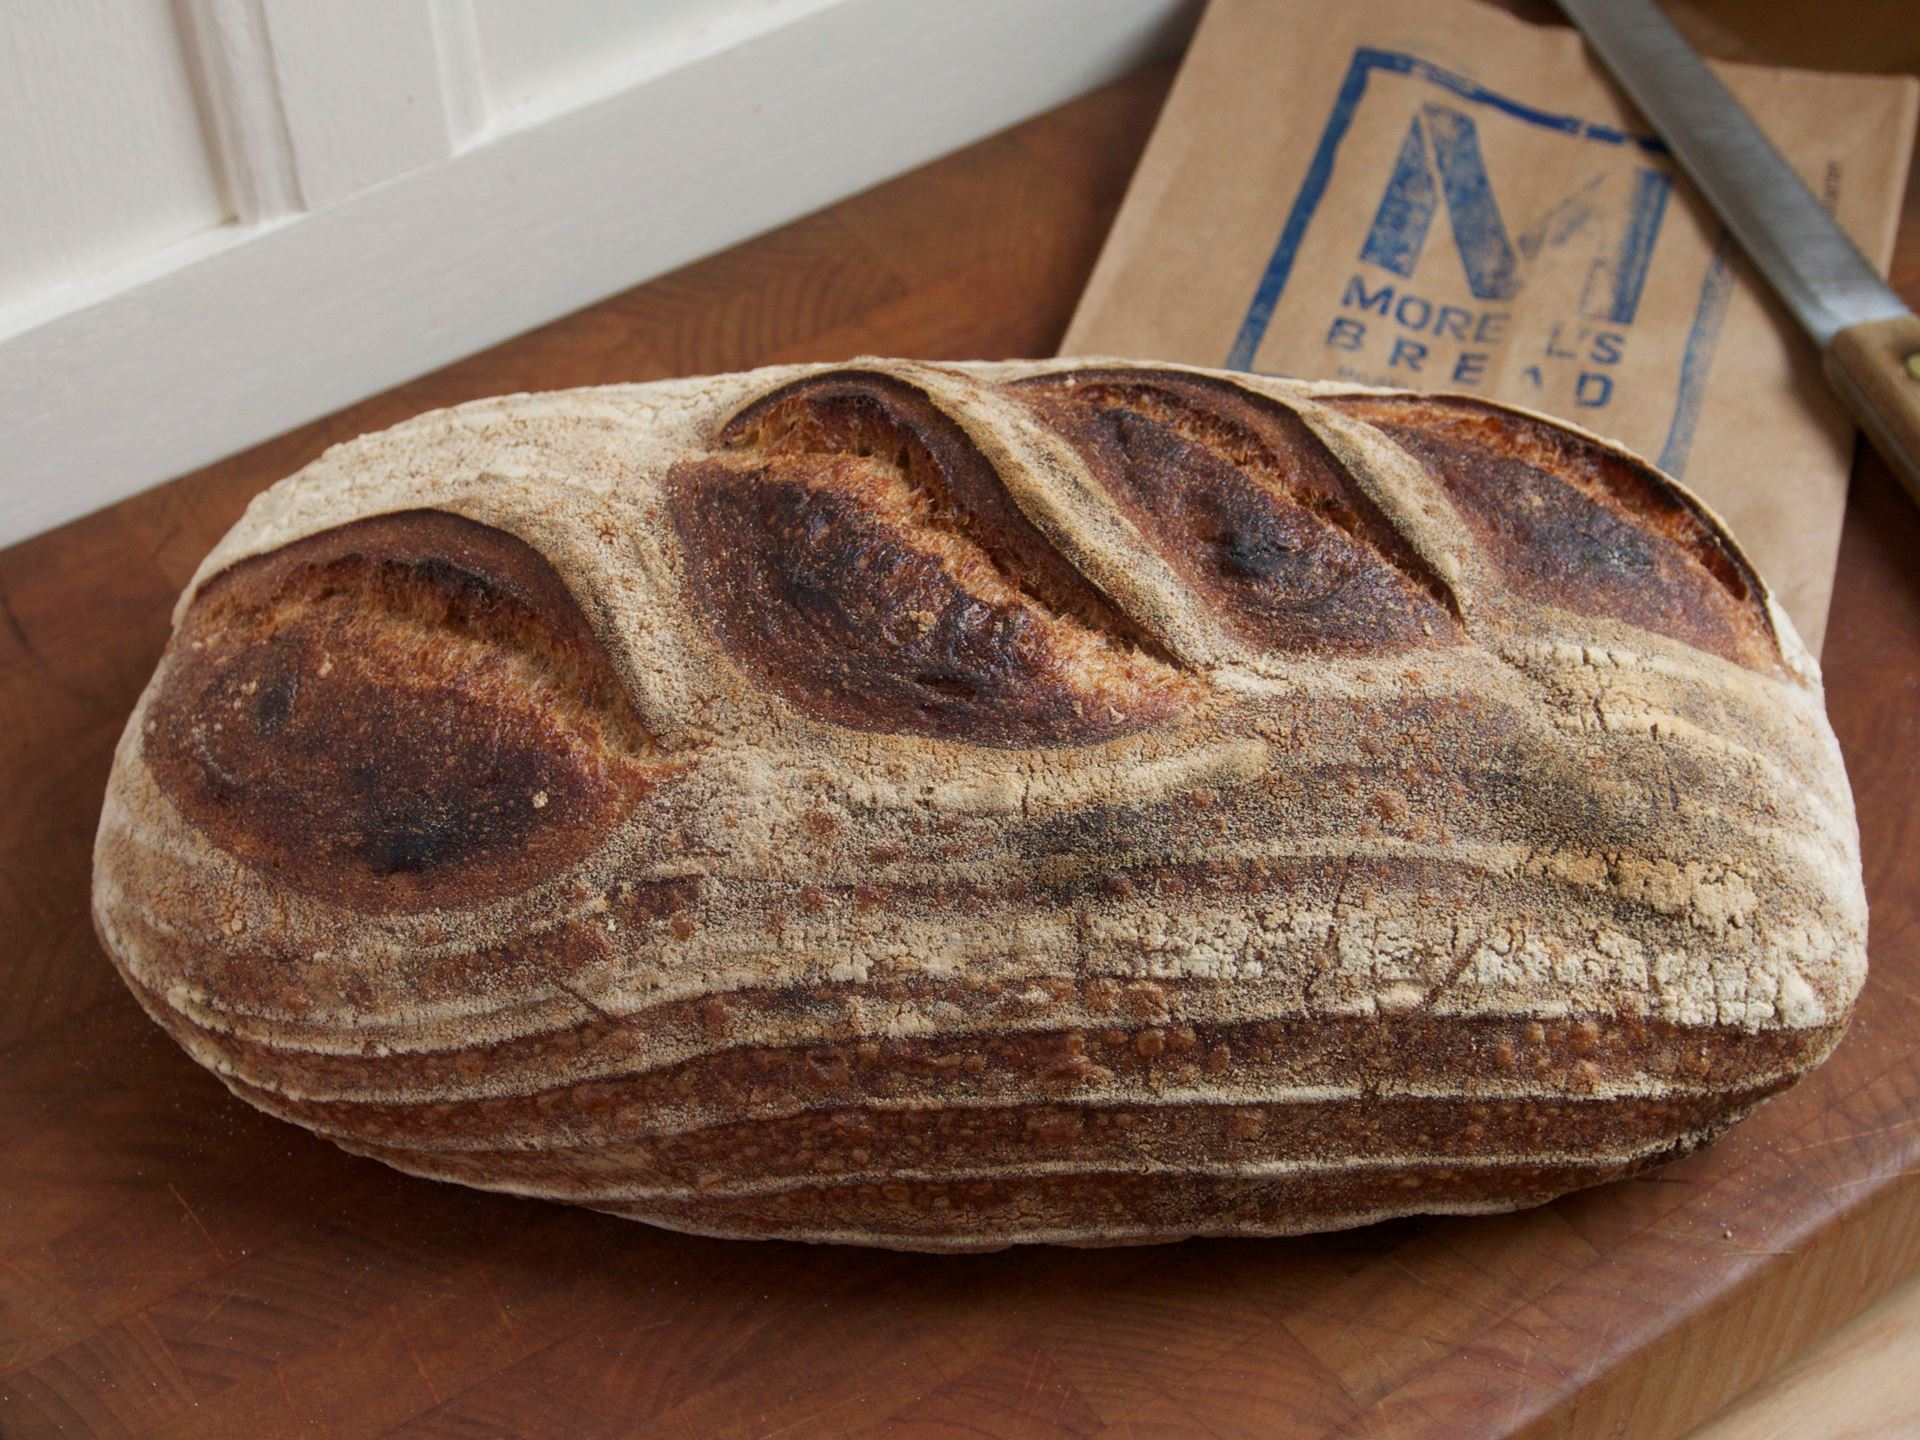 Picture of Morell's Bread Country Batard